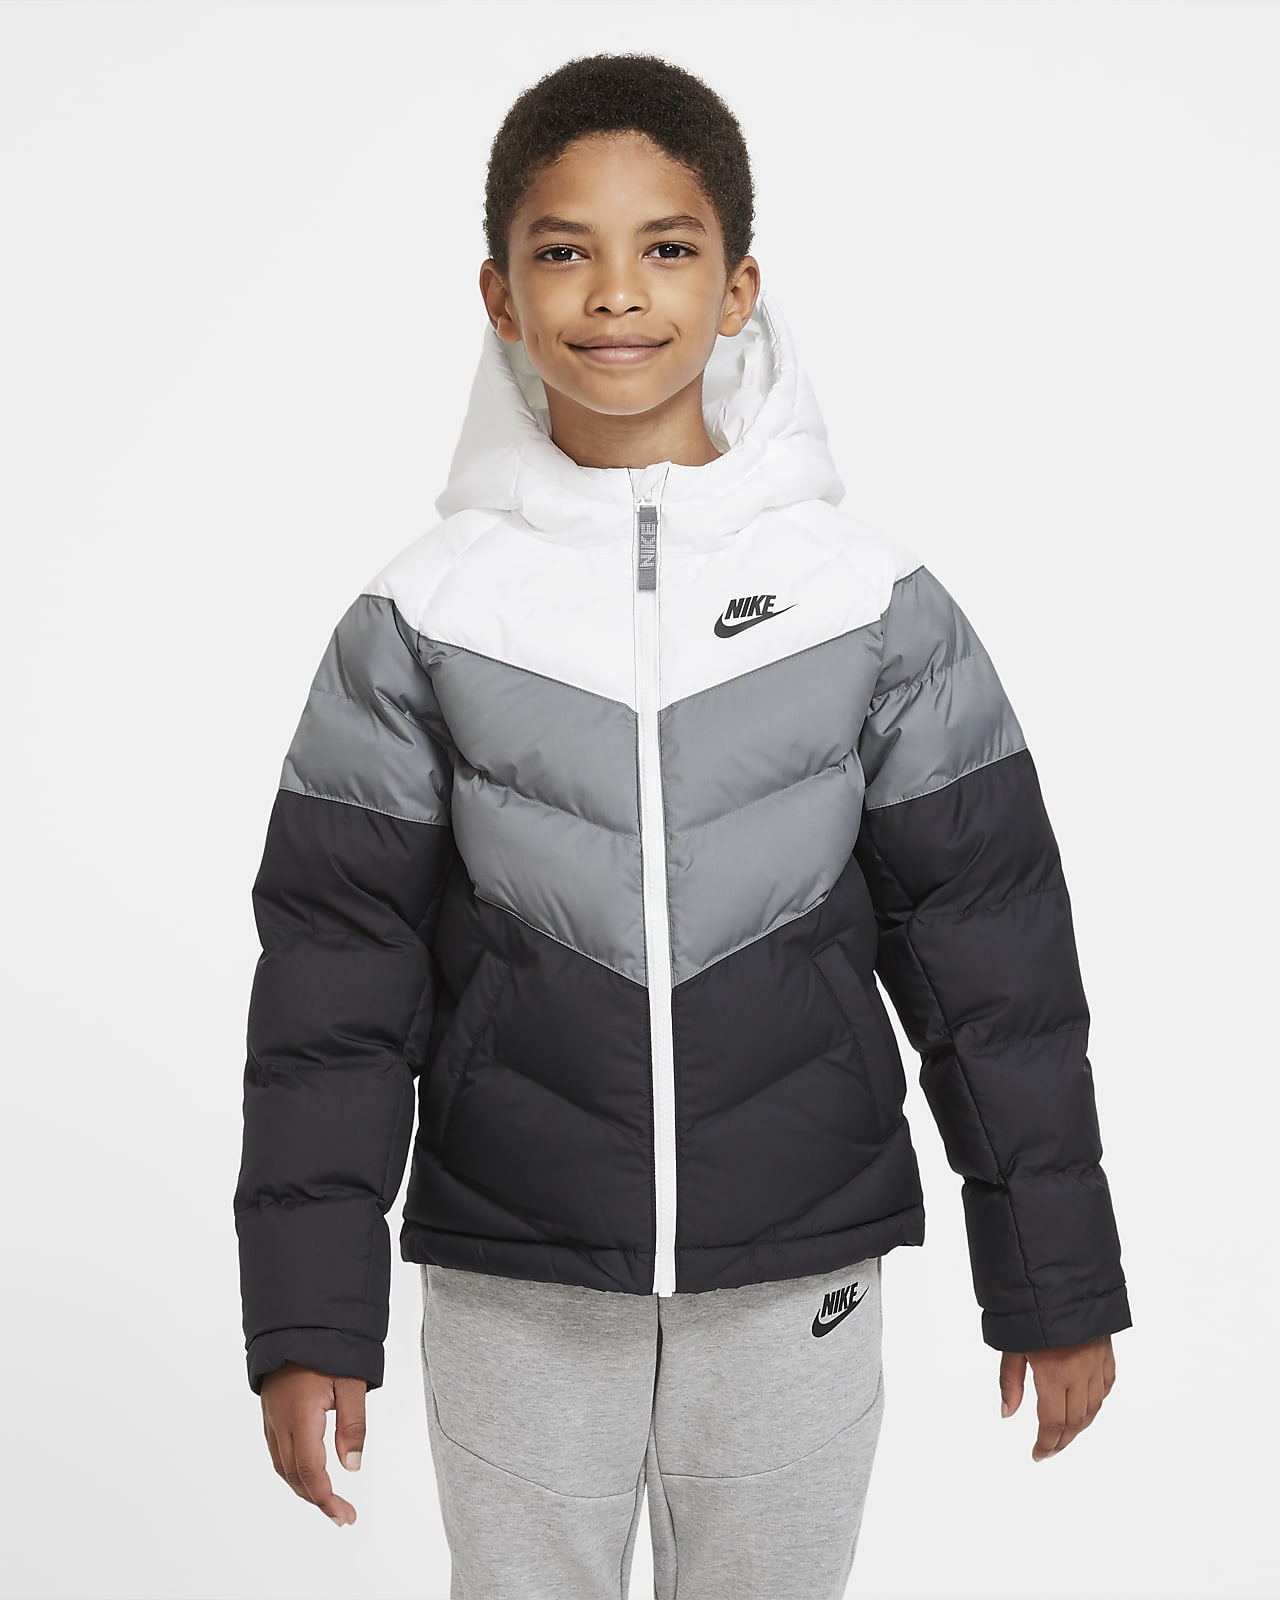 Nike Jacka Team Fall Svart Barn